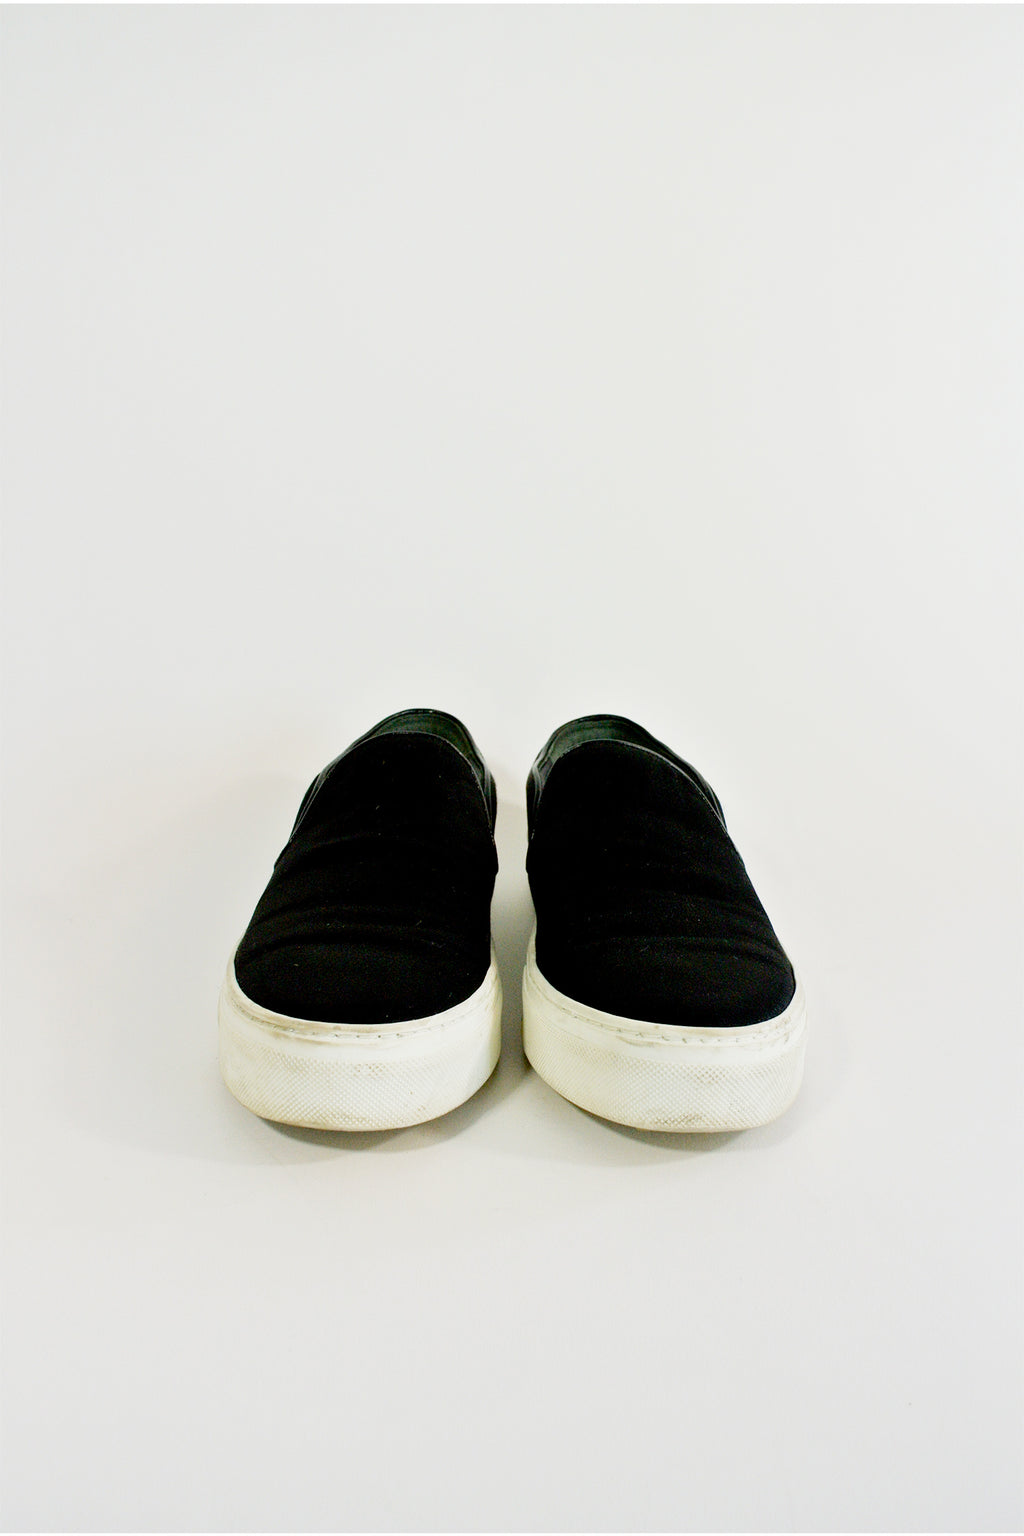 Celine Satin Slip-On Sneaker Sz 38